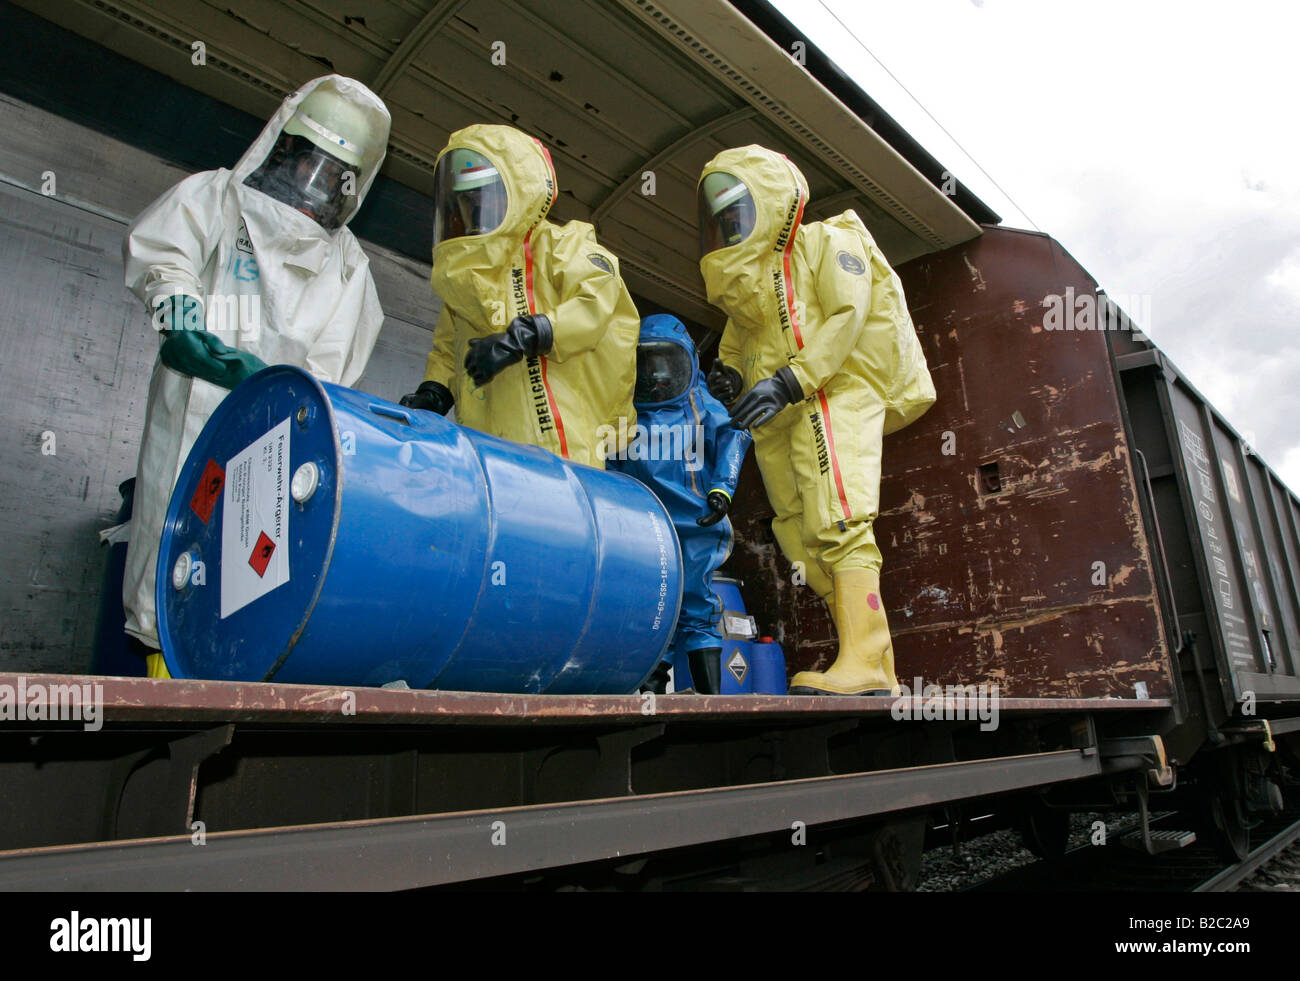 Firemen wearing hazmat suits at work during a disaster control drill, near Poing, Bavaria, Germany, Europe - Stock Image